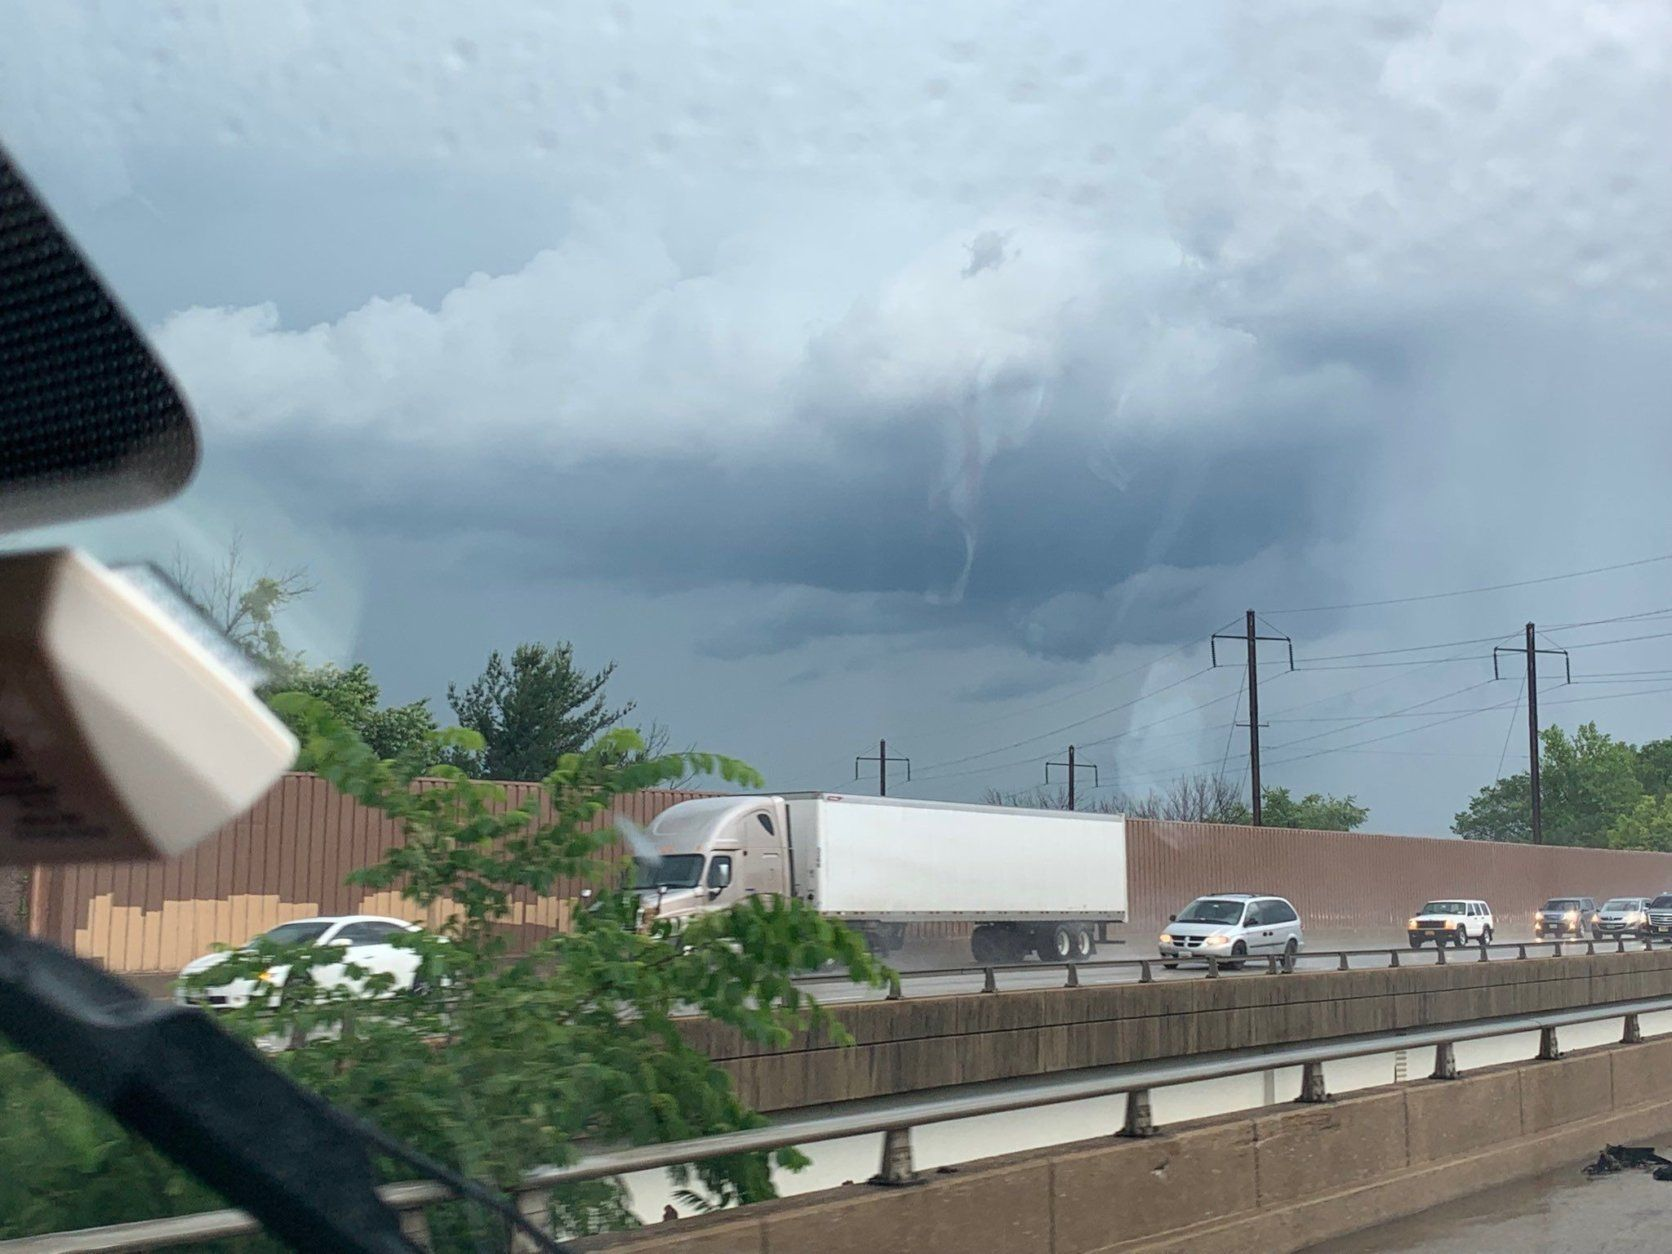 The view was ominous outside BWI Marshall Airport around 3:30 p.m. Thursday. (Courtesy @boogaboosmommy via Twitter)